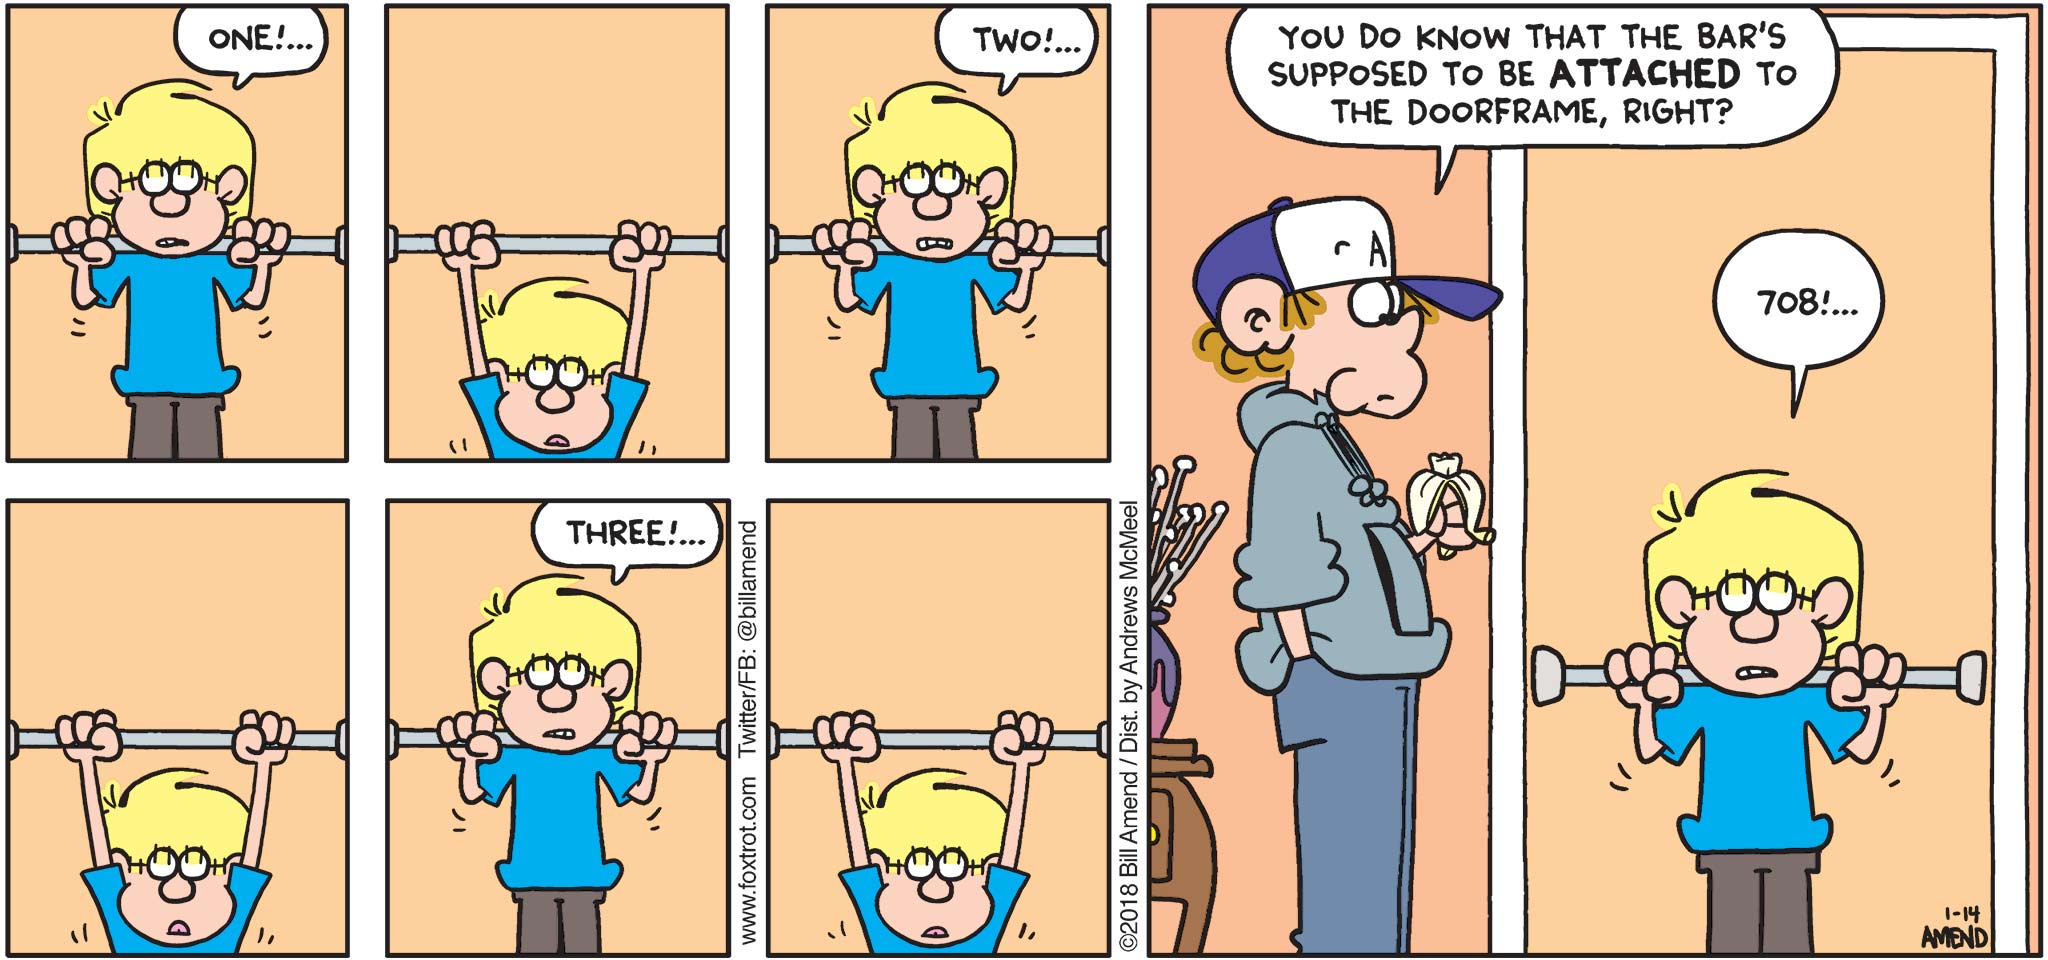 "FoxTrot by Bill Amend - ""Bar Easier"" published January 14, 2018 - Jason says: One!... Two!... Three!... Peter says: You do know that the bar's supposed to be attached to the doorframe, right? Jason says: 708!..."